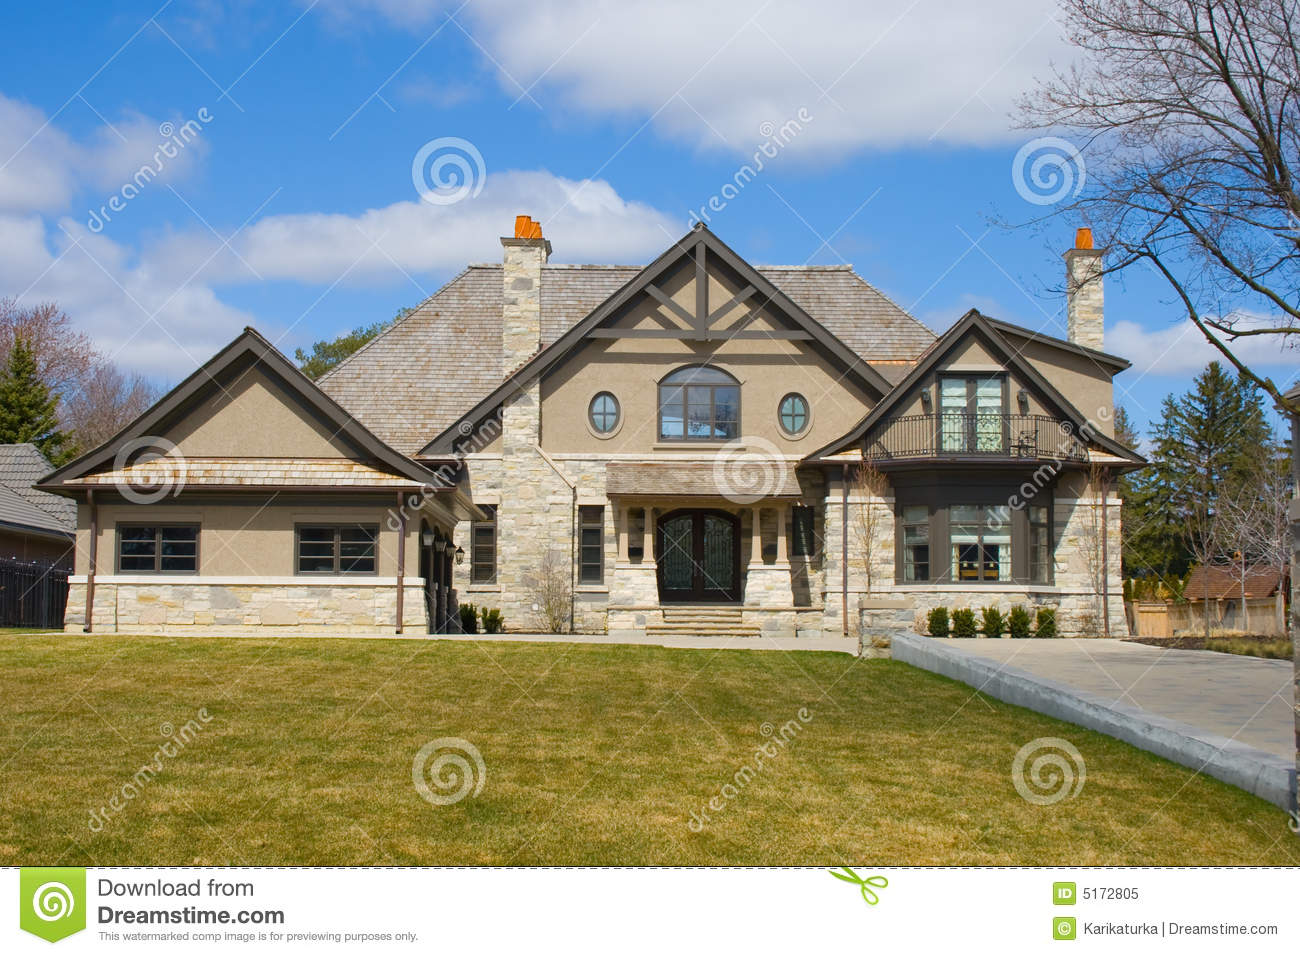 Five Bedroom House Royalty Free Stock Image